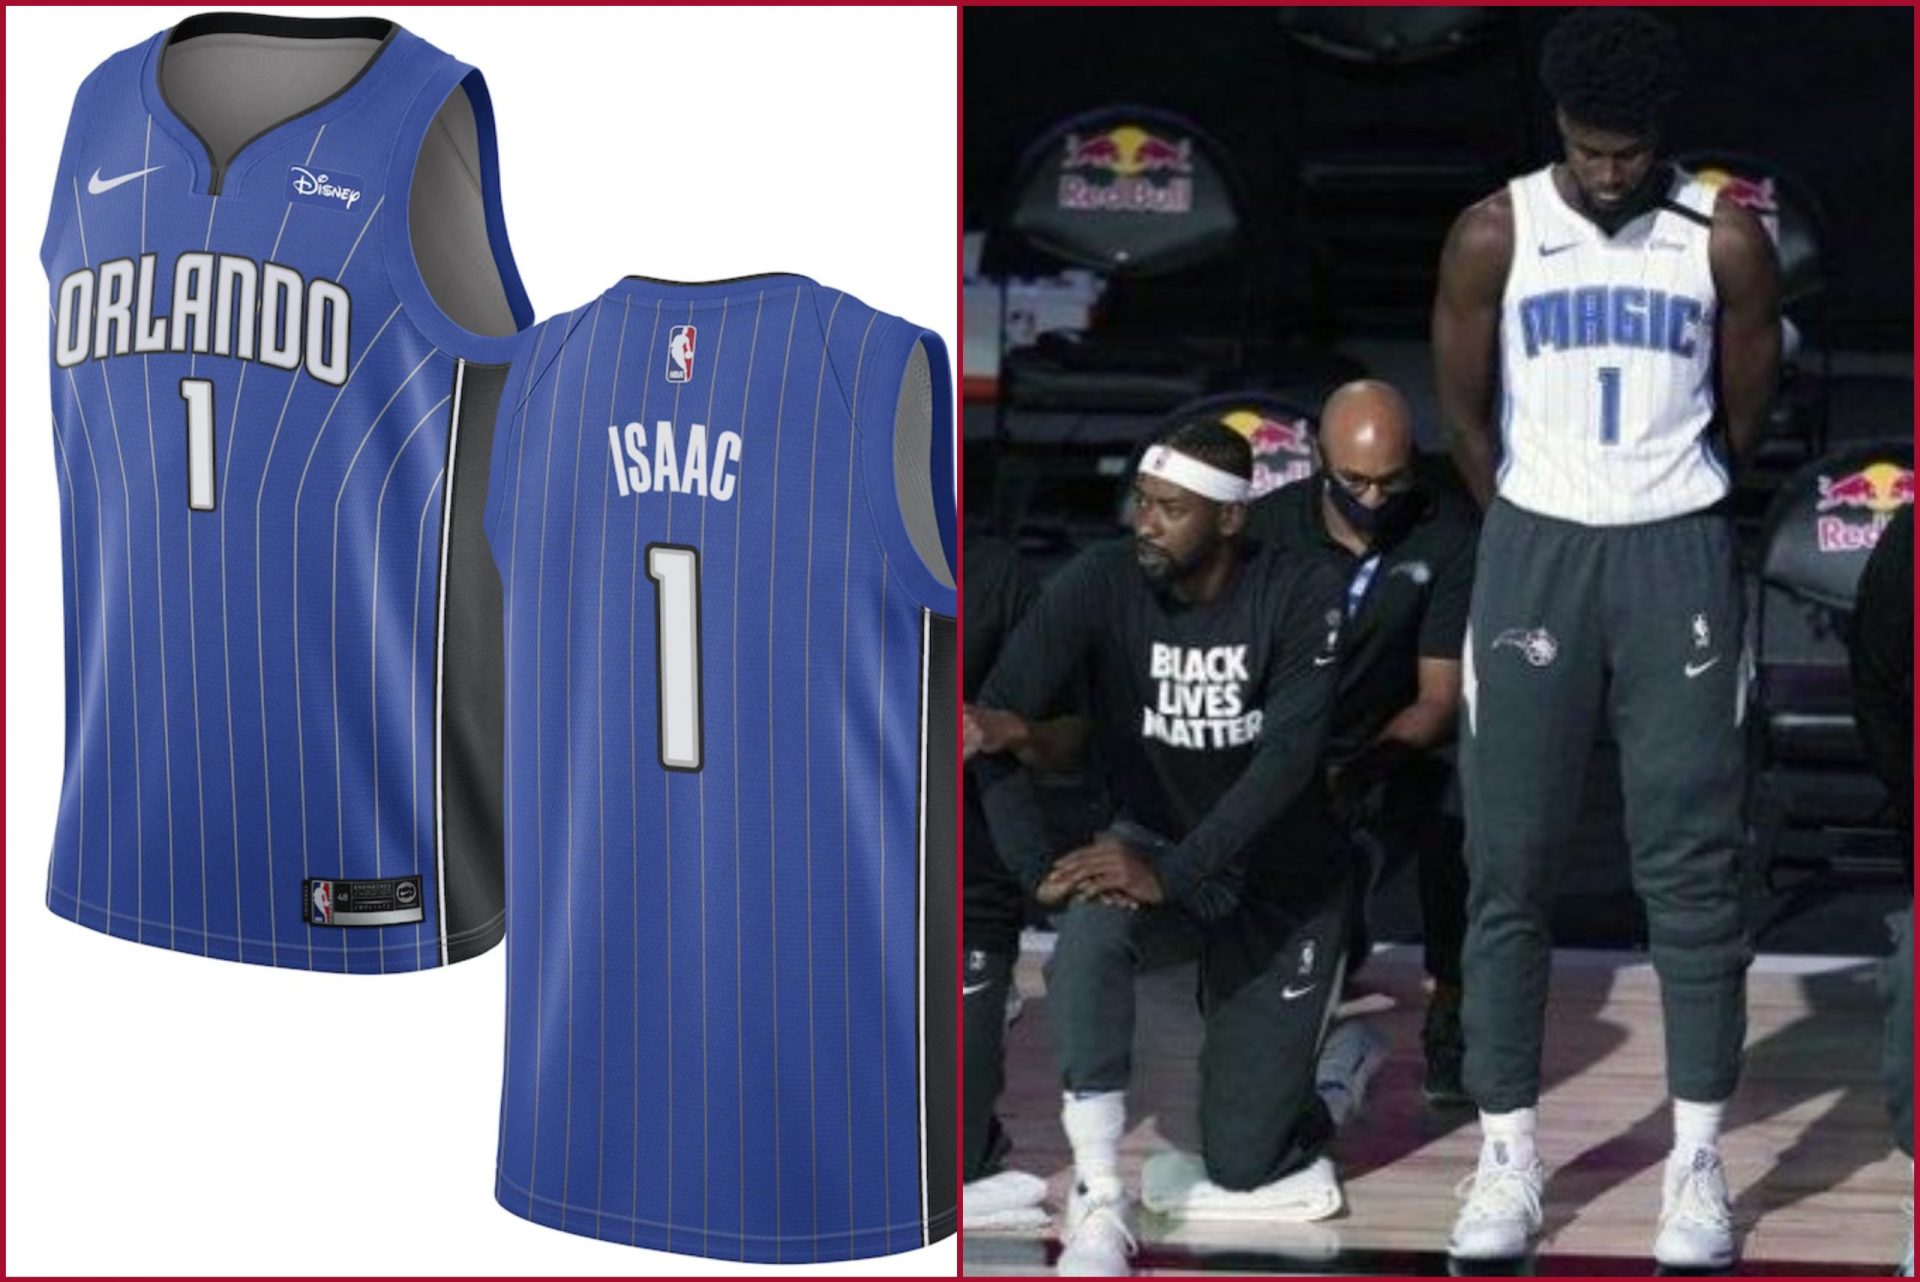 Jonathan Isaac jersey sales skyrocket after refusing to kneel for Black Lives Matter movement - THE SPORTS ROOM